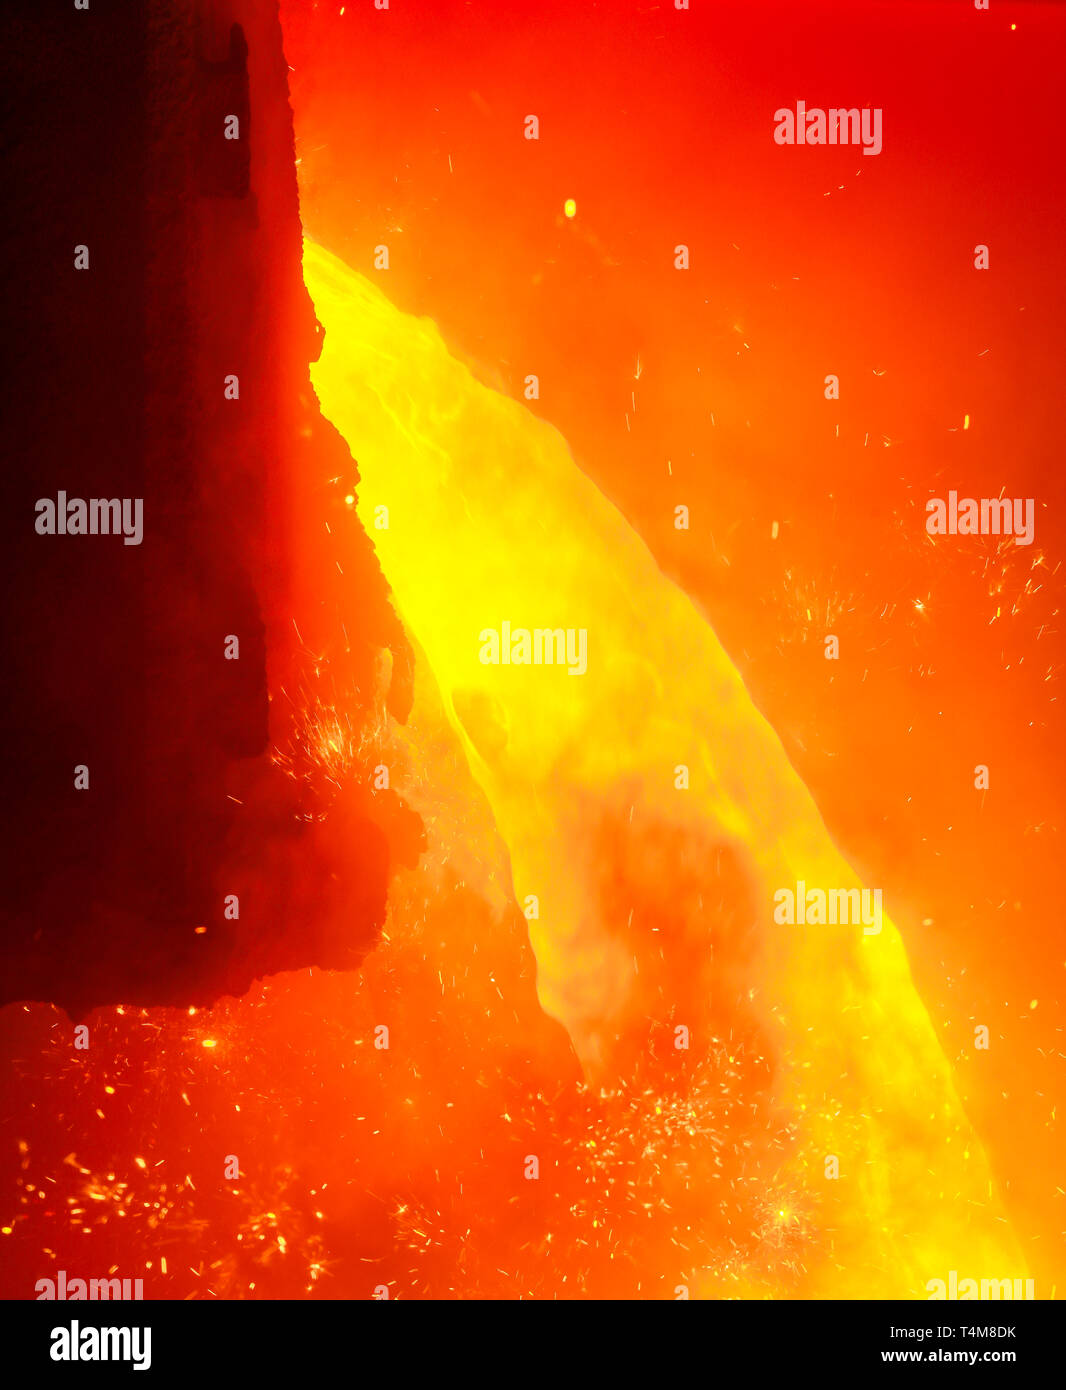 Duisburg, Ruhr area, North Rhine-Westphalia, Germany - ThyssenKrupp Steel, 1500 degree hot pig iron during tapping at blast furnace 8, up to 19 percen - Stock Image